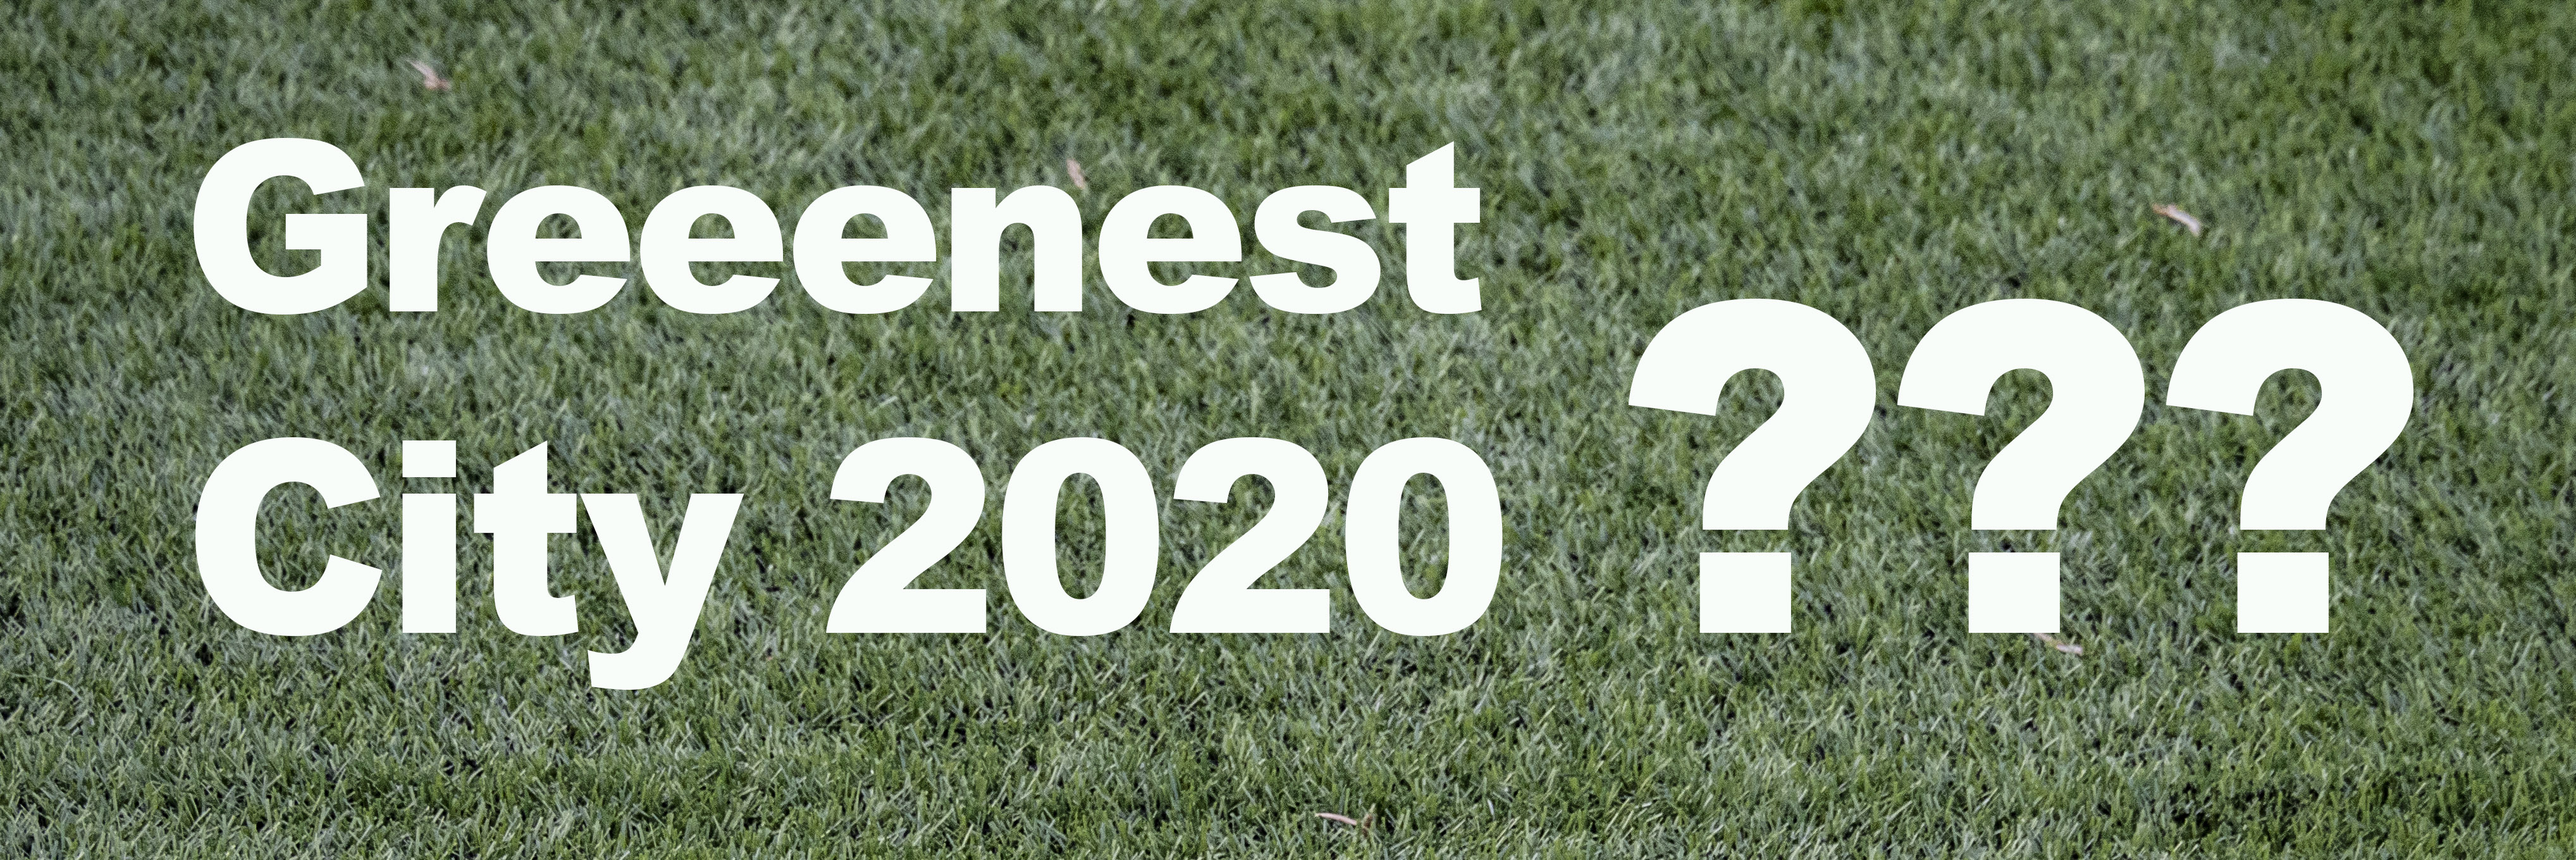 Greenest City graphic on artificial turf